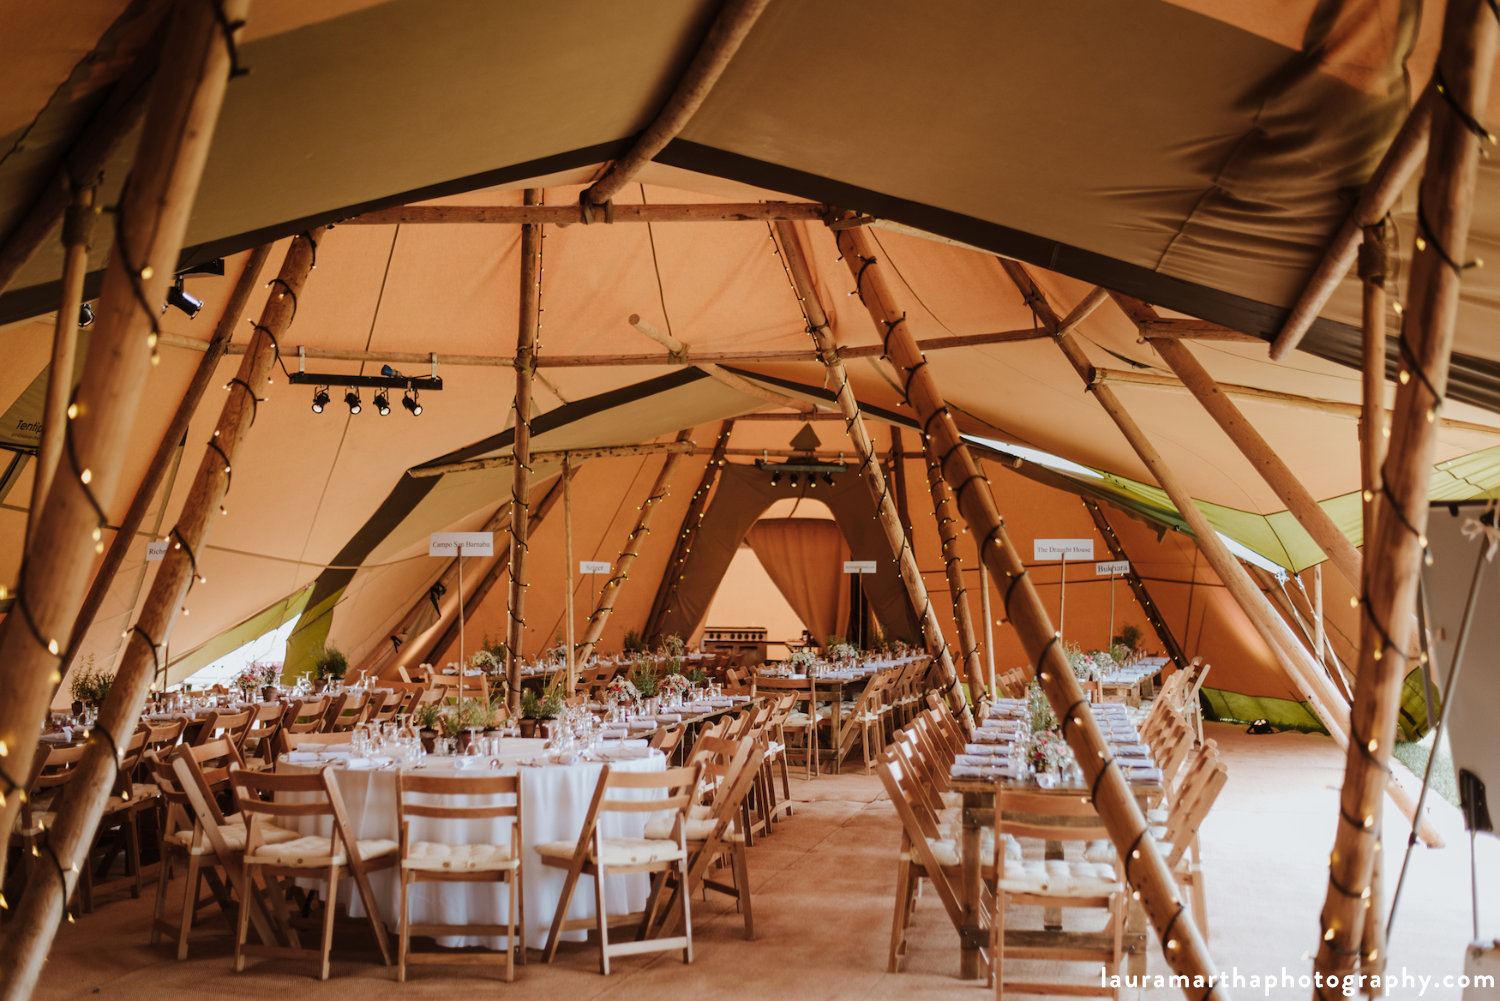 Cotswolds_tipi_events.jpg